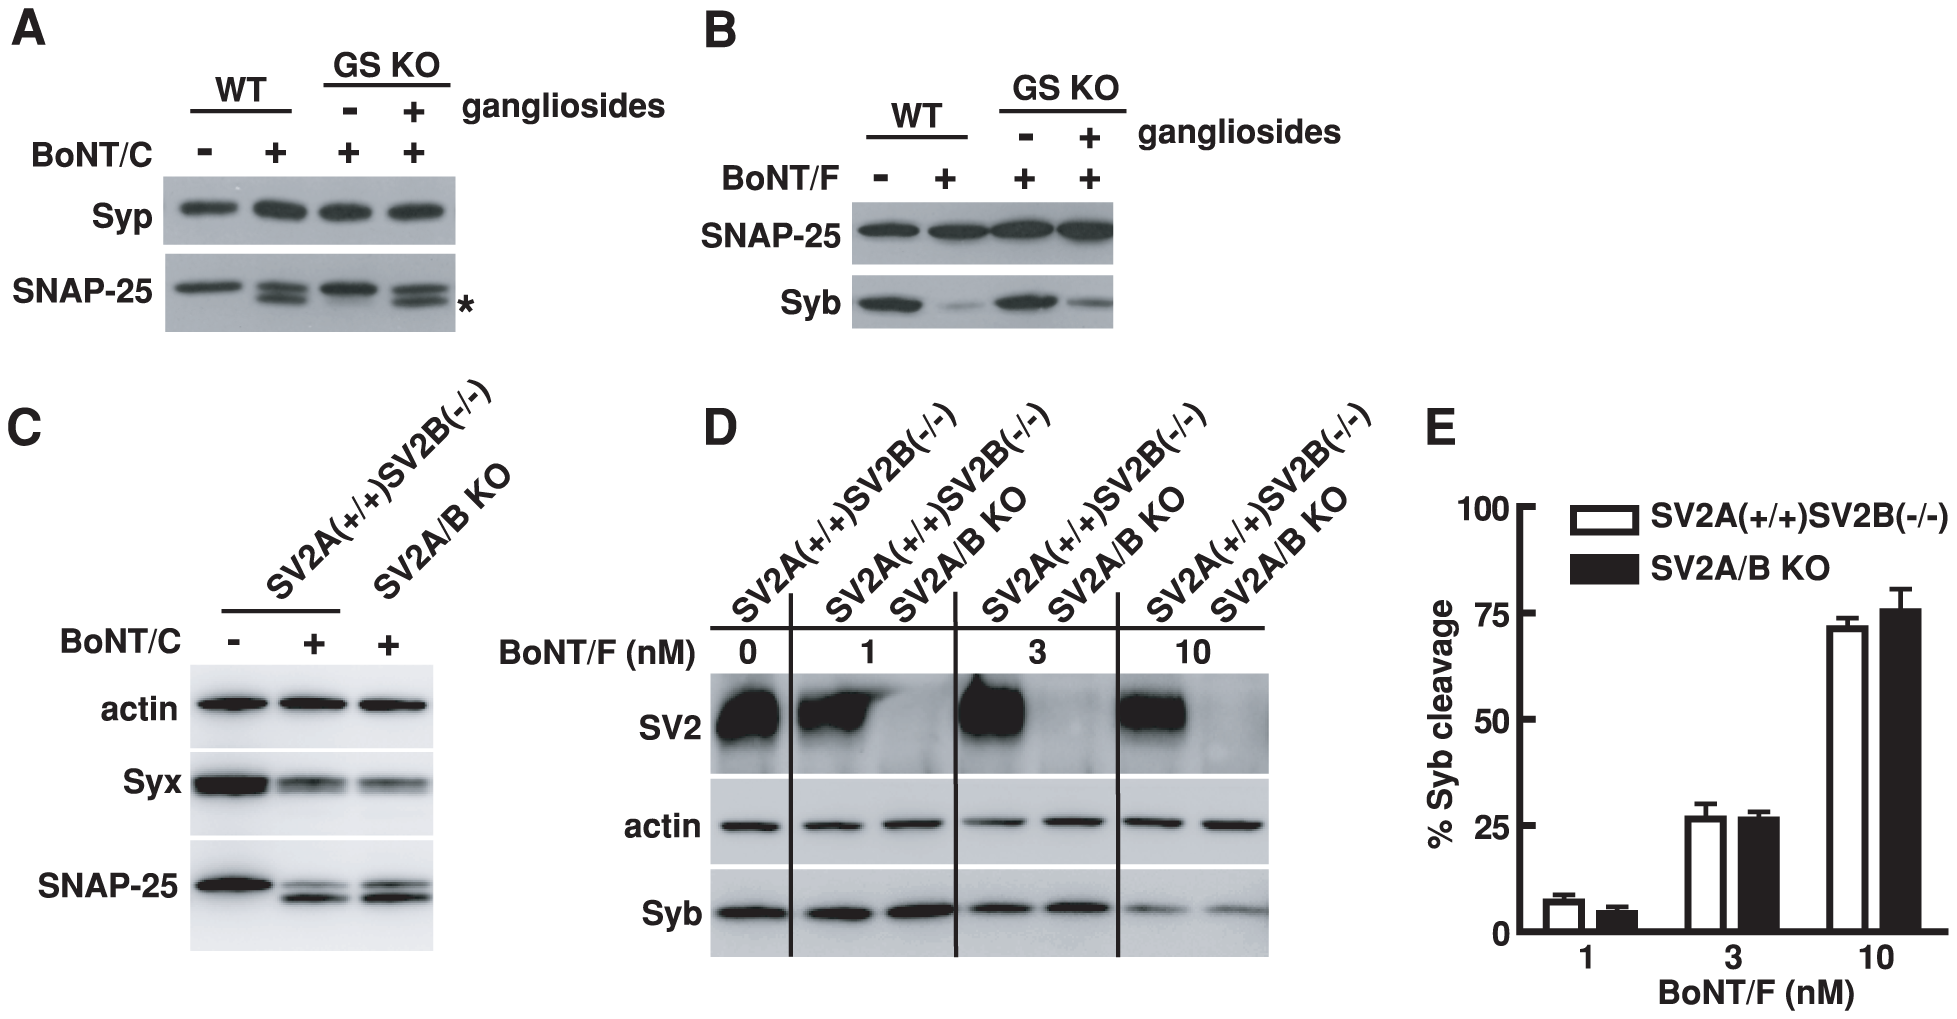 Entry of BoNT/C and BoNT/F into hippocampal neurons requires PSG but not SV2.